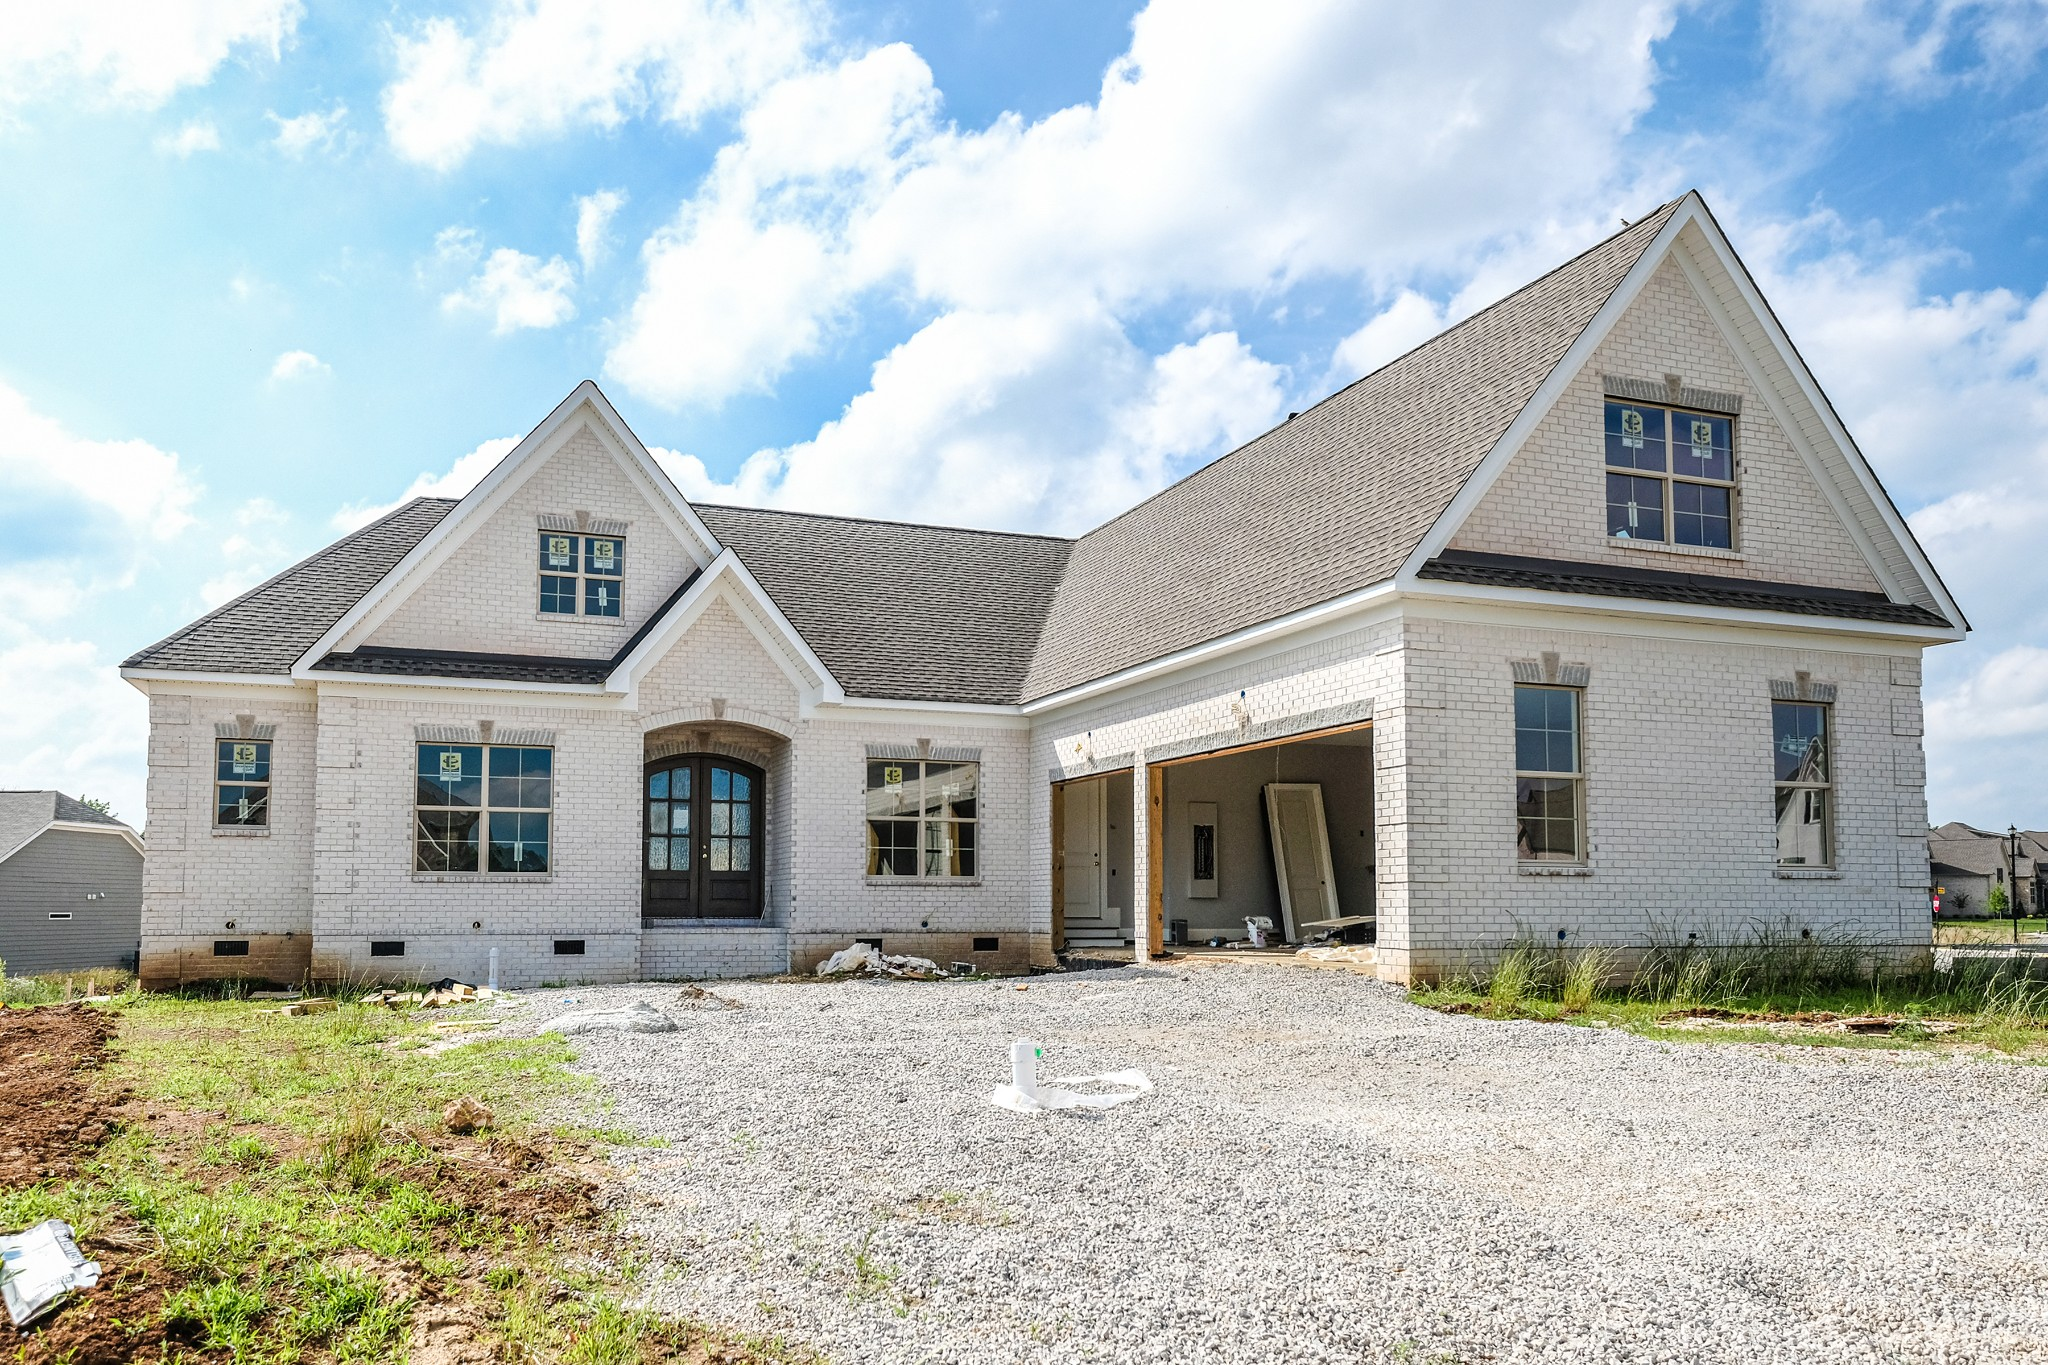 202 Trout Ct (Lot 238), Spring Hill, TN 37174 - Spring Hill, TN real estate listing